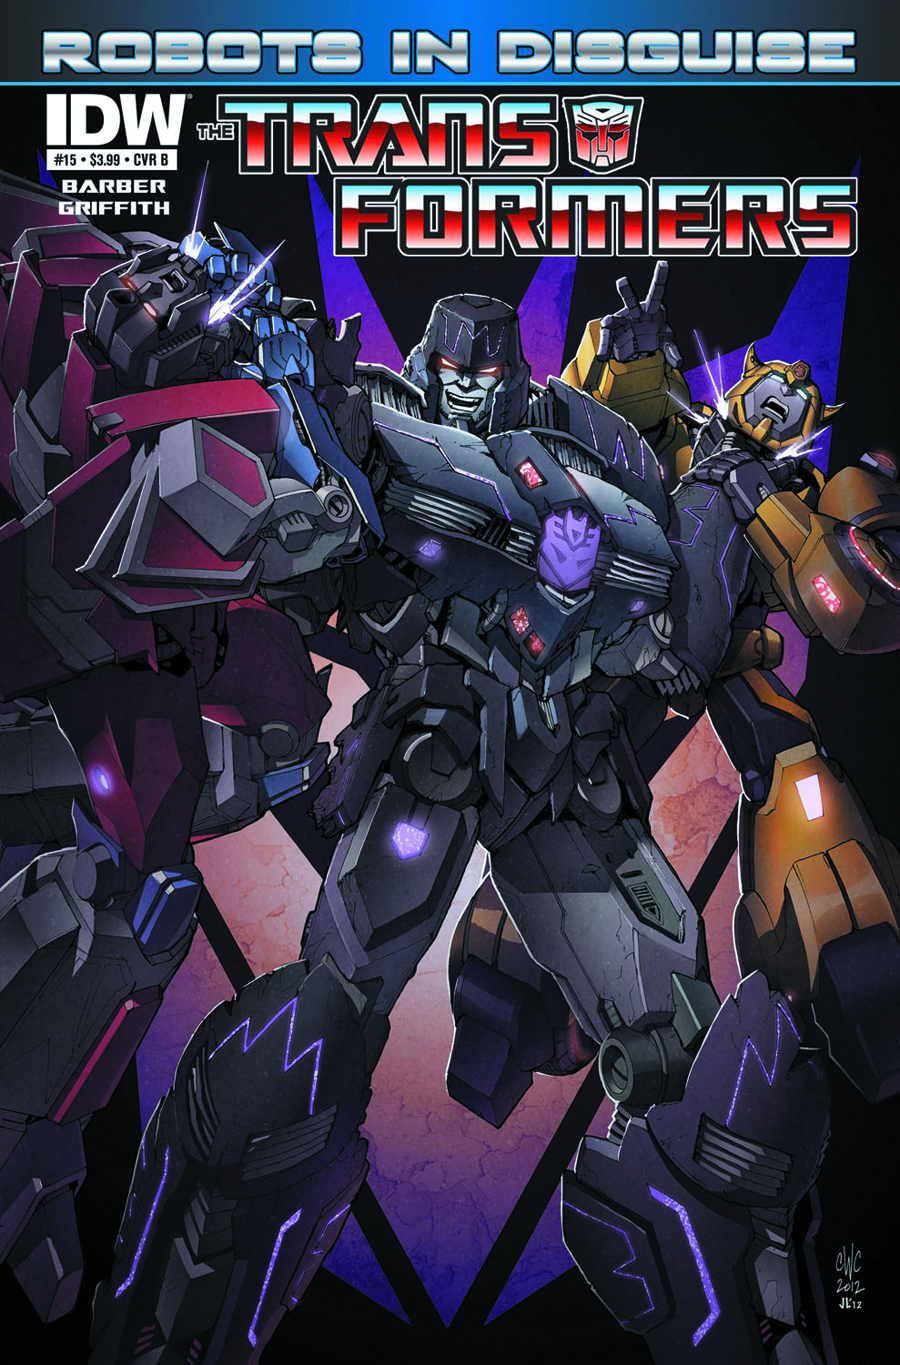 TRANSFORMERS ROBOTS IN DISGUISE #15